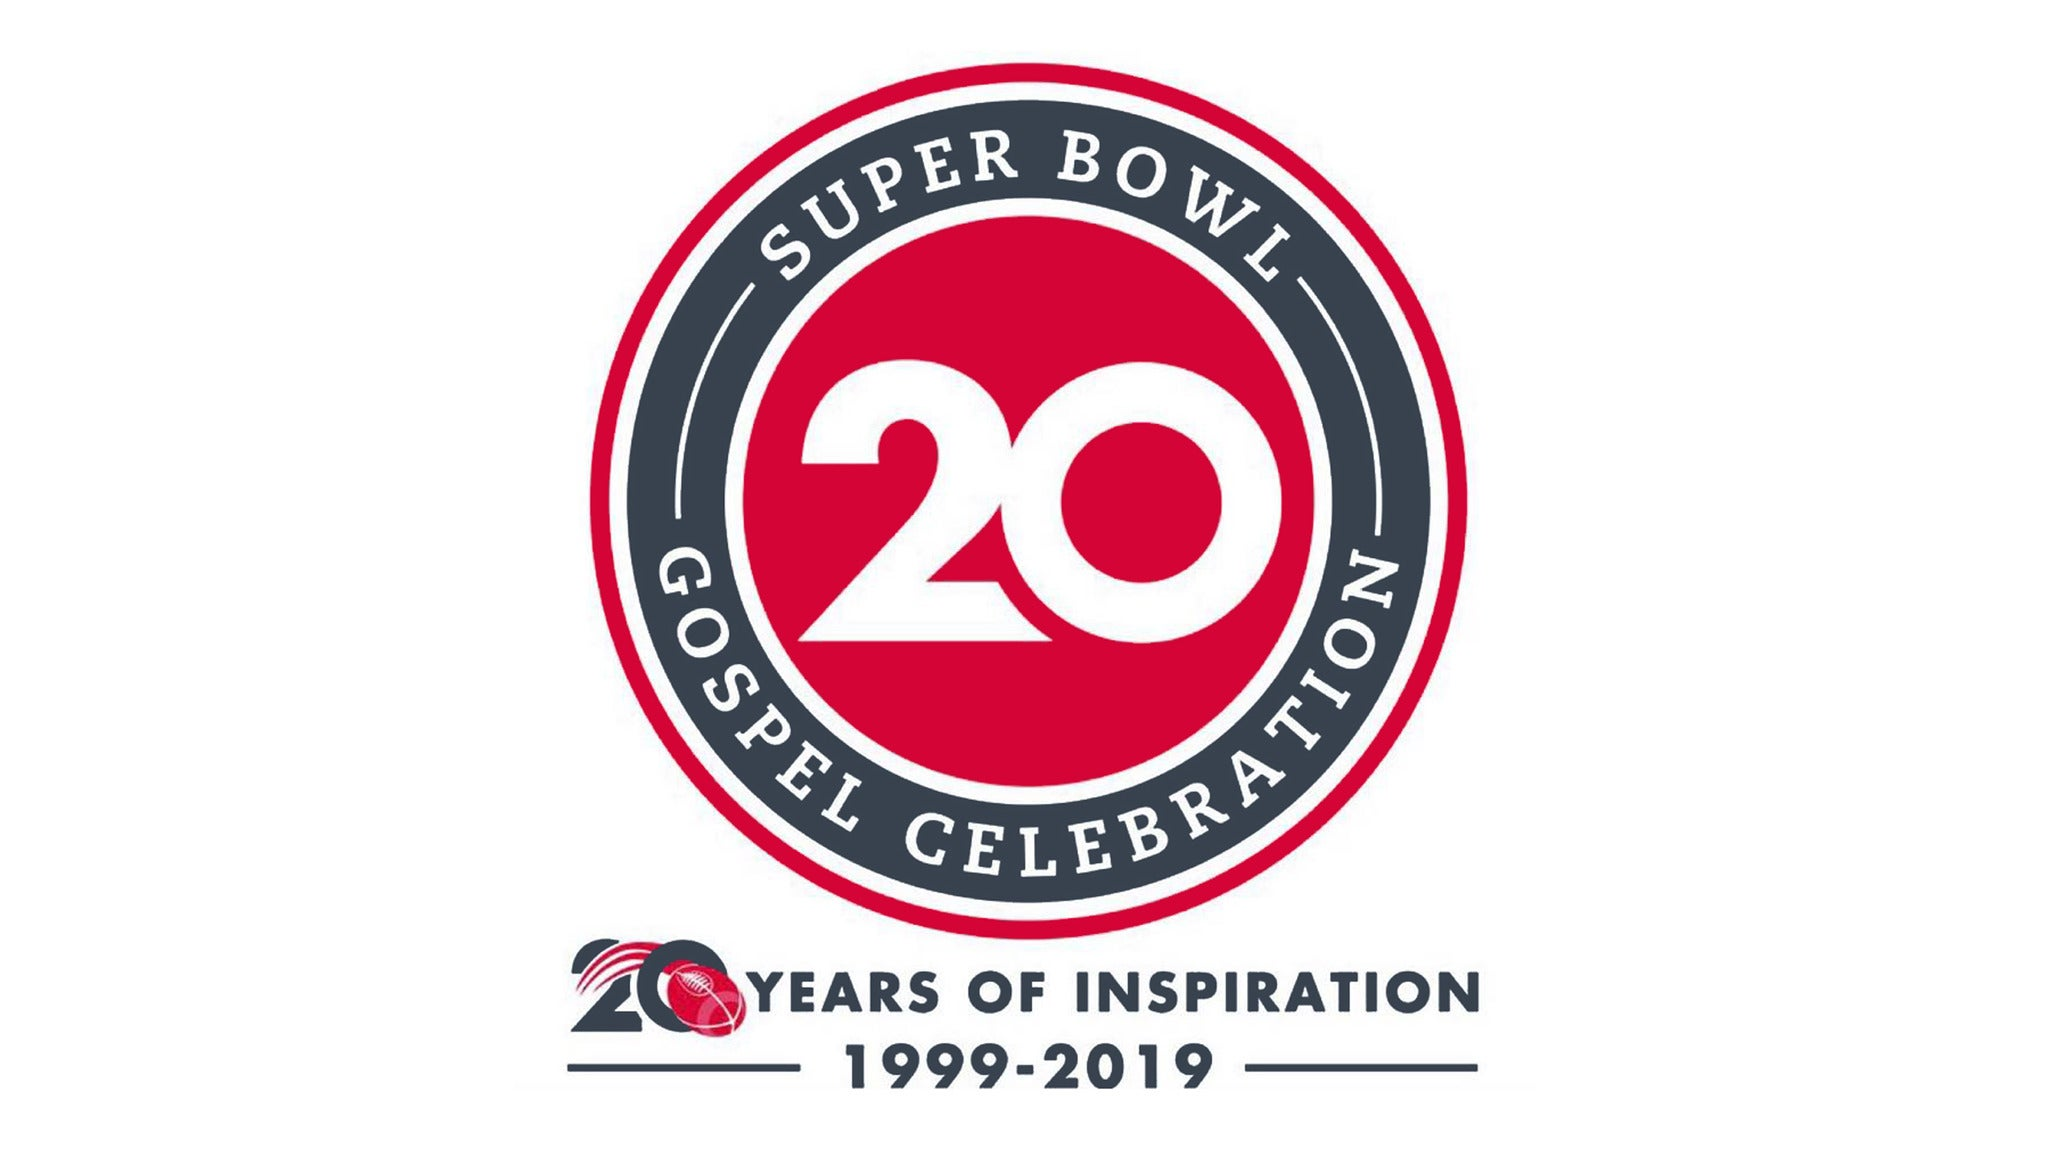 Superbowl Gospel Celebration-20th Anniversary